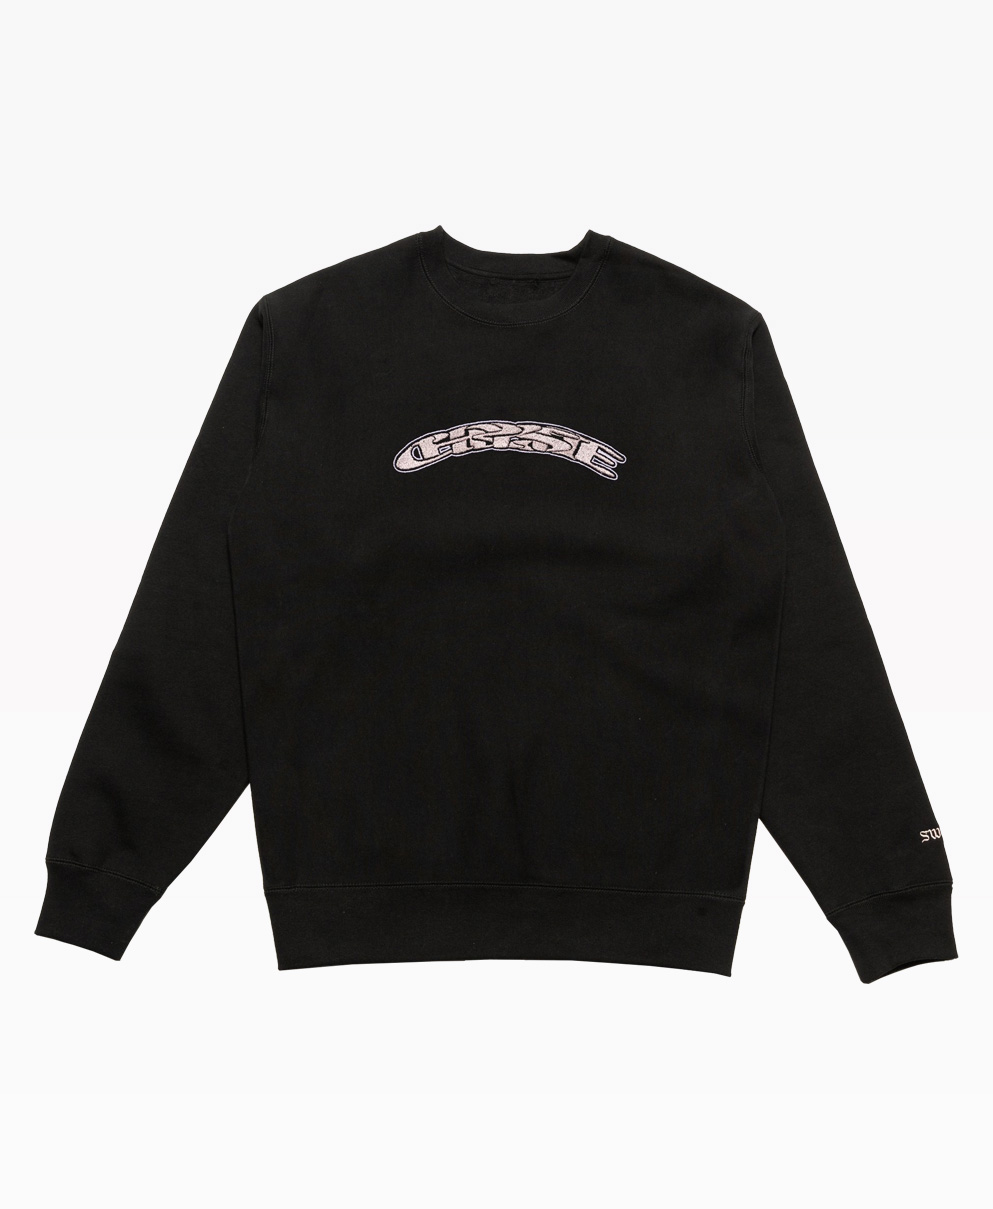 Chrystie Swfc Twisted Logo Crewneck : Away Color Front